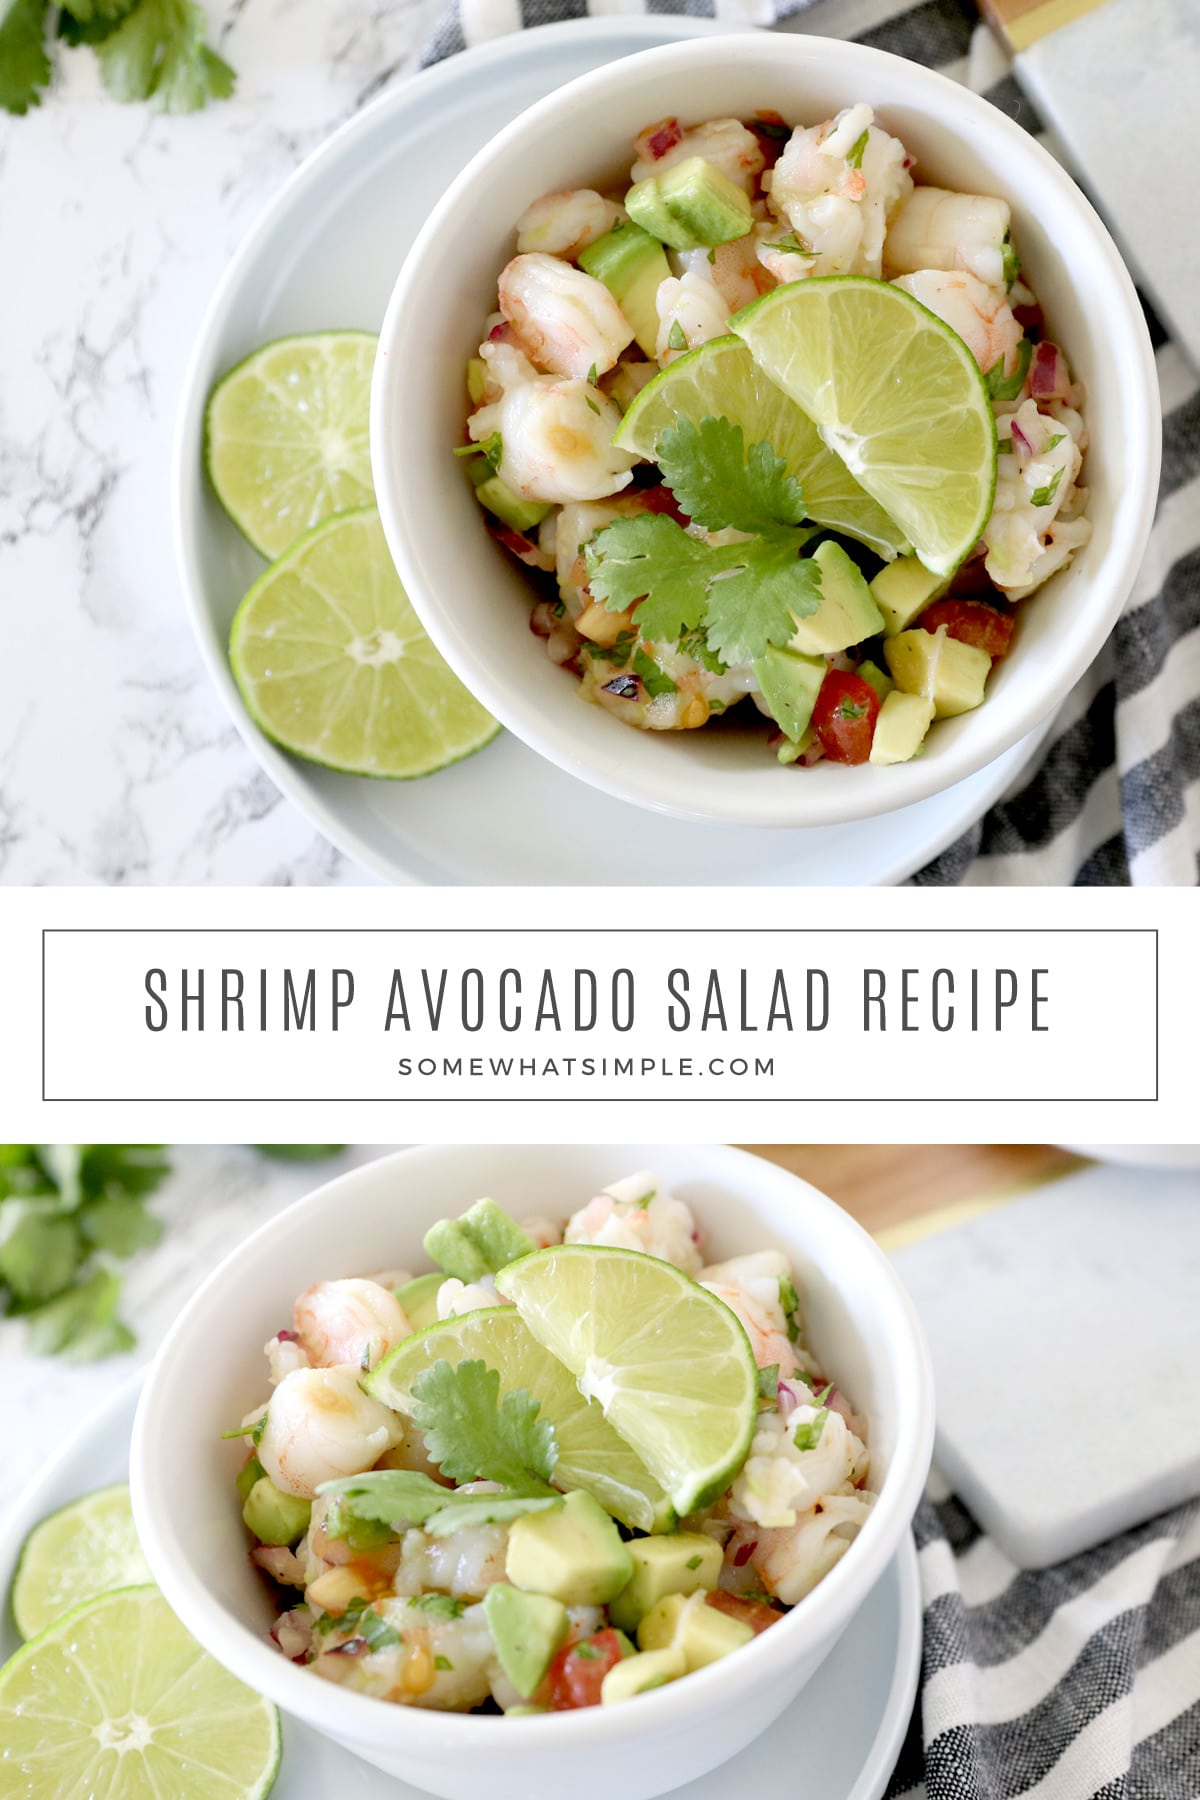 Shrimp avocado salad is fresh, easy, and downright delicious. It's a pretty chopped salad that has all the best flavors of summer. via @somewhatsimple